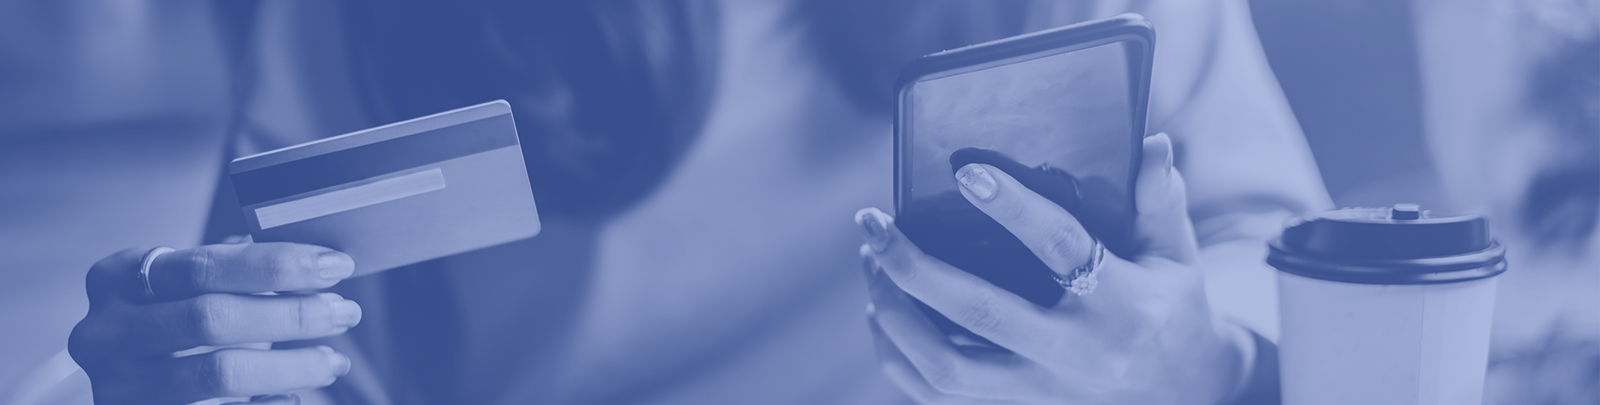 woman holding credit card and phone in her hands header image